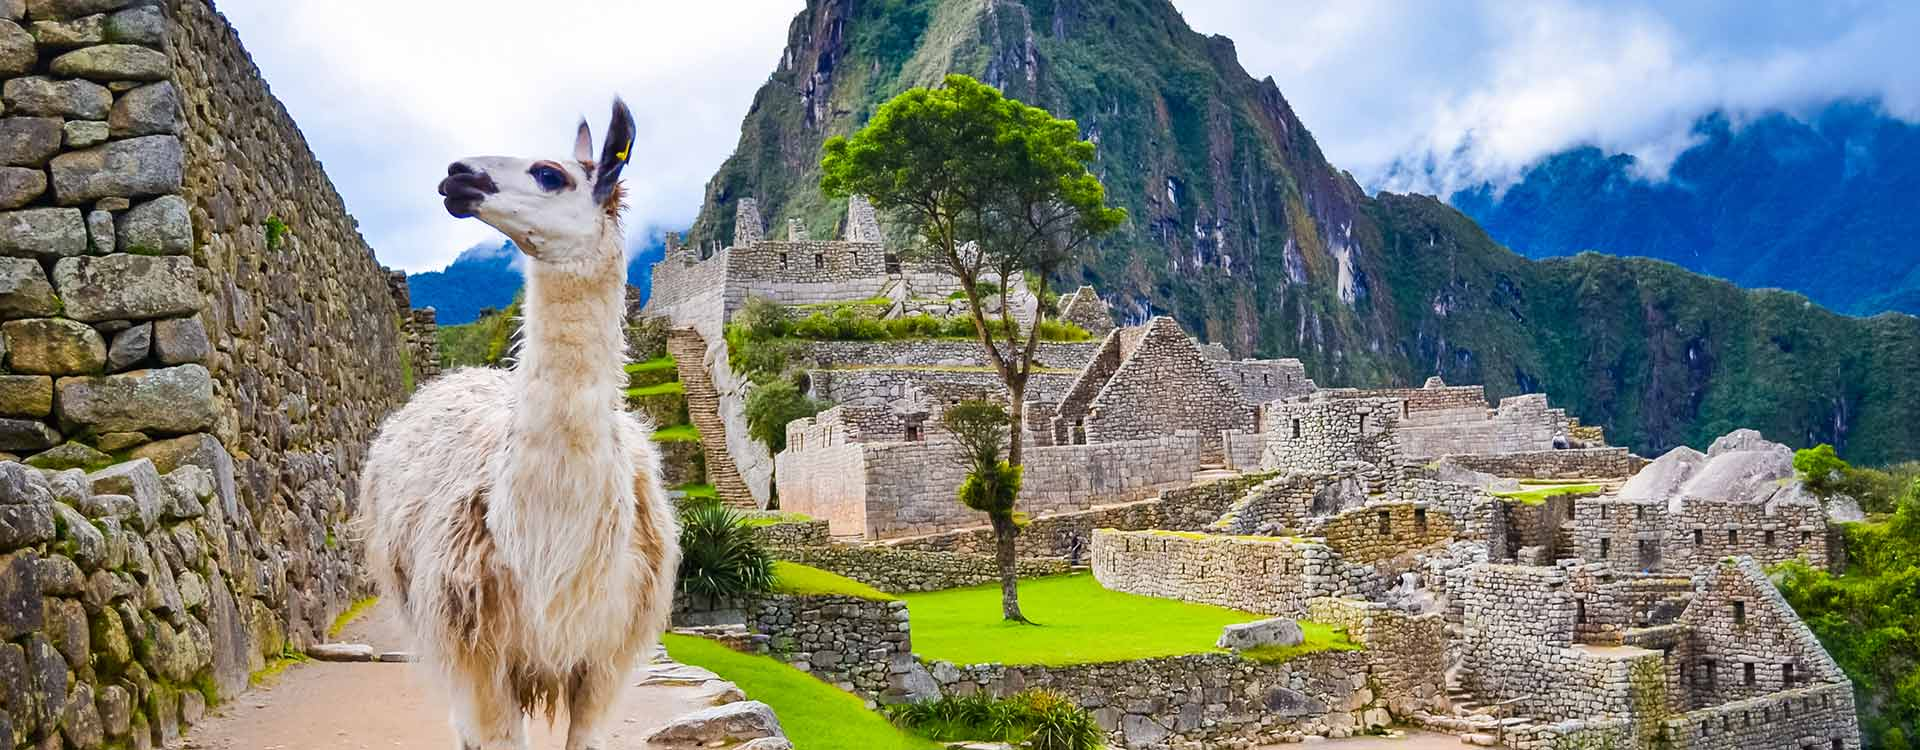 Things-to-do-in-peru